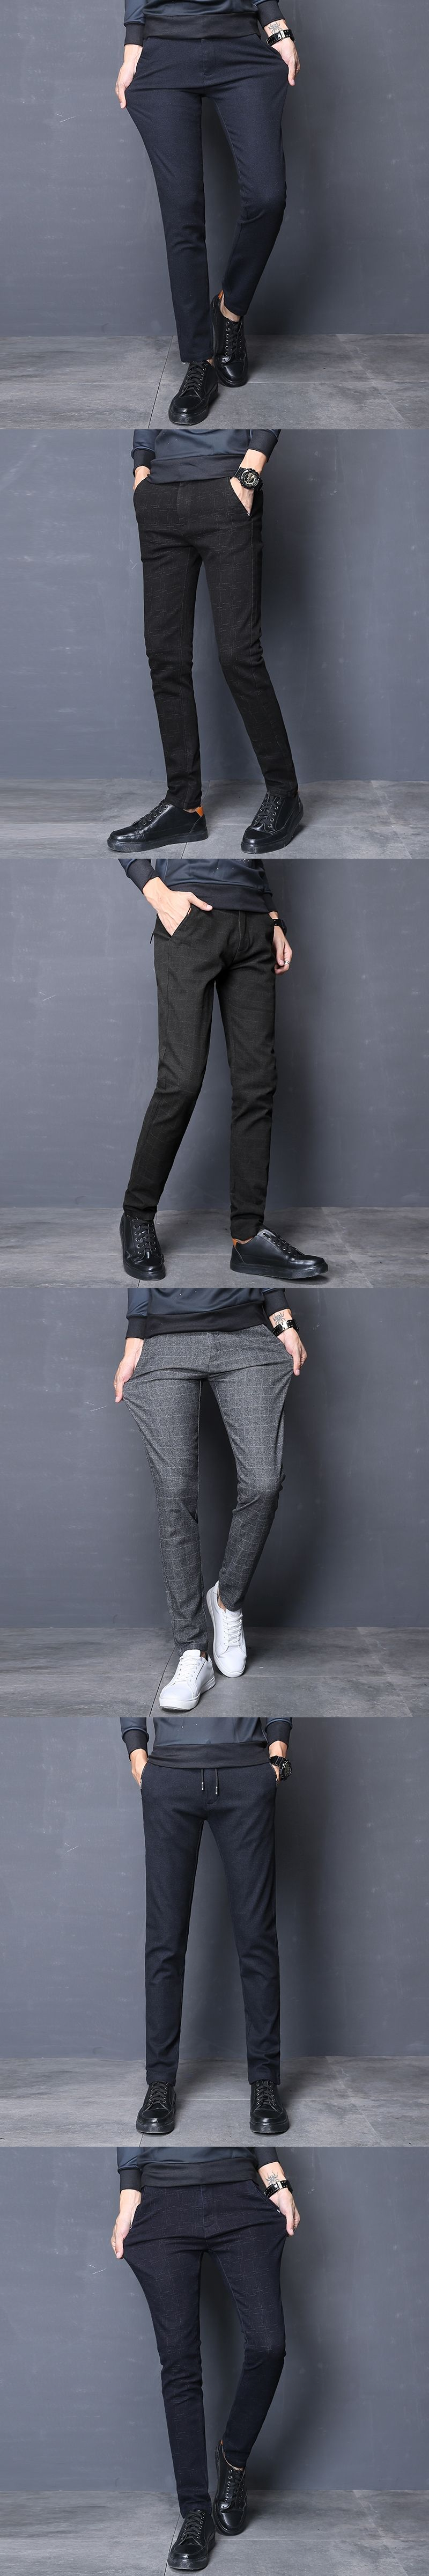 new pants menus casual stretch brand pants comfort straight leg